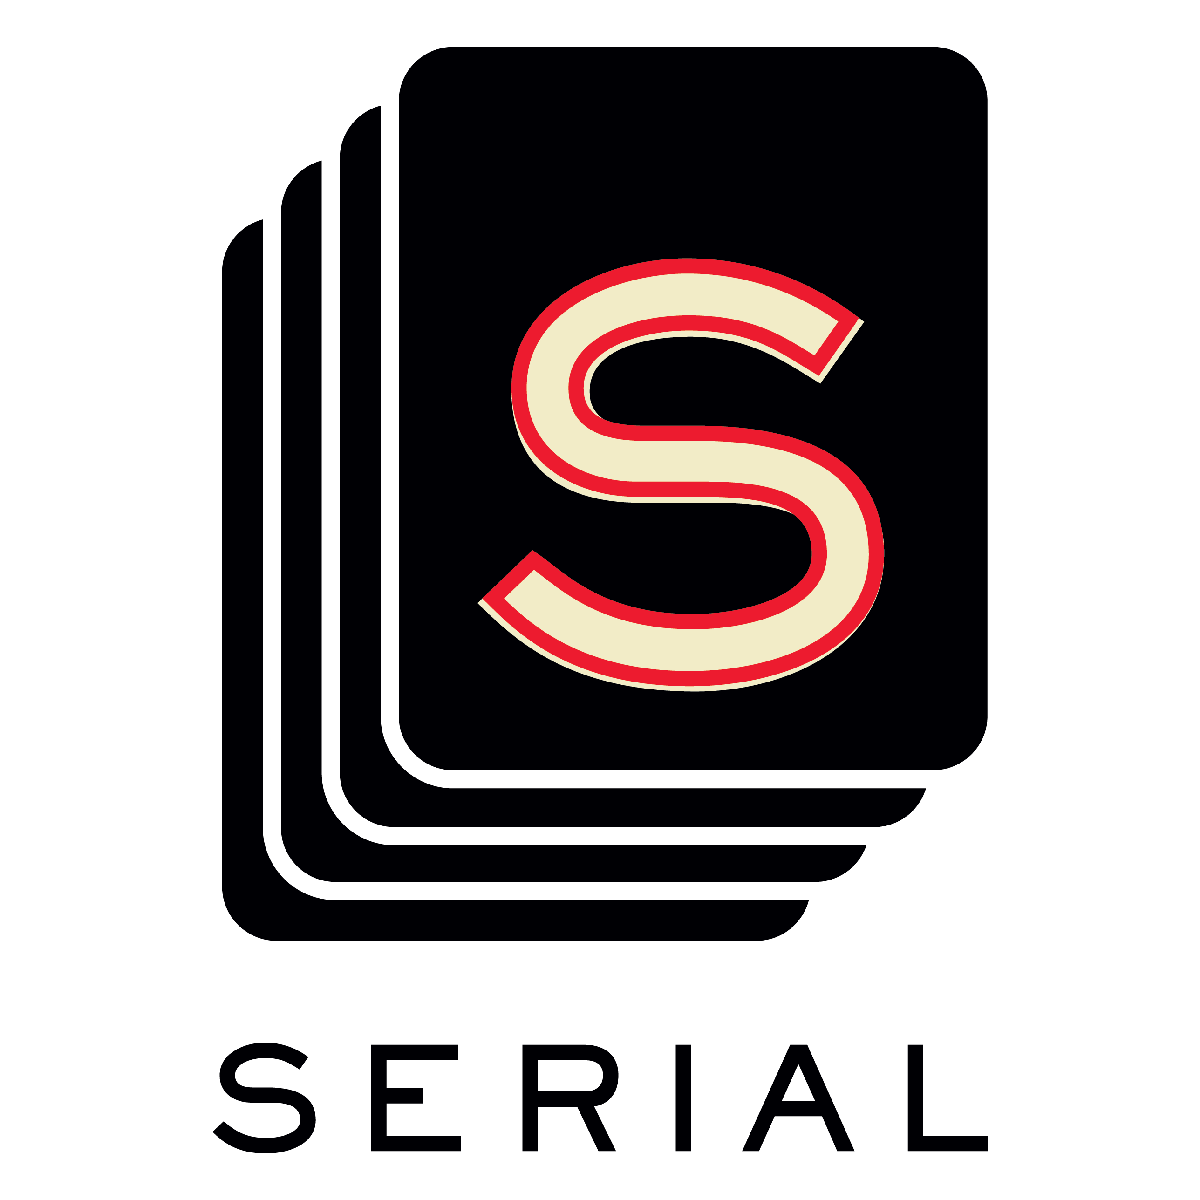 Serial - If you love a good Dateline and Unsolved Mysteries marathon, then you will love Serial. It focuses on the case of 1999 high school senior Adnan Syed who was convicted to life in prison for murdering his ex-girlfriend Hae Min Lee when her body was found in a Baltimore park six weeks after her disappearance. Adnan swears he is innocent (still to this day) and Serial tries to find the truth. There are lots of twists and turns, present day interviews with Adnan and others, and will have you hooked after the very first episode. (P.S. There is a Season 2 that follows a different case entirely but I wasn't as hooked for that one. Season 1 with Adnan has held my attention 3 times through!)